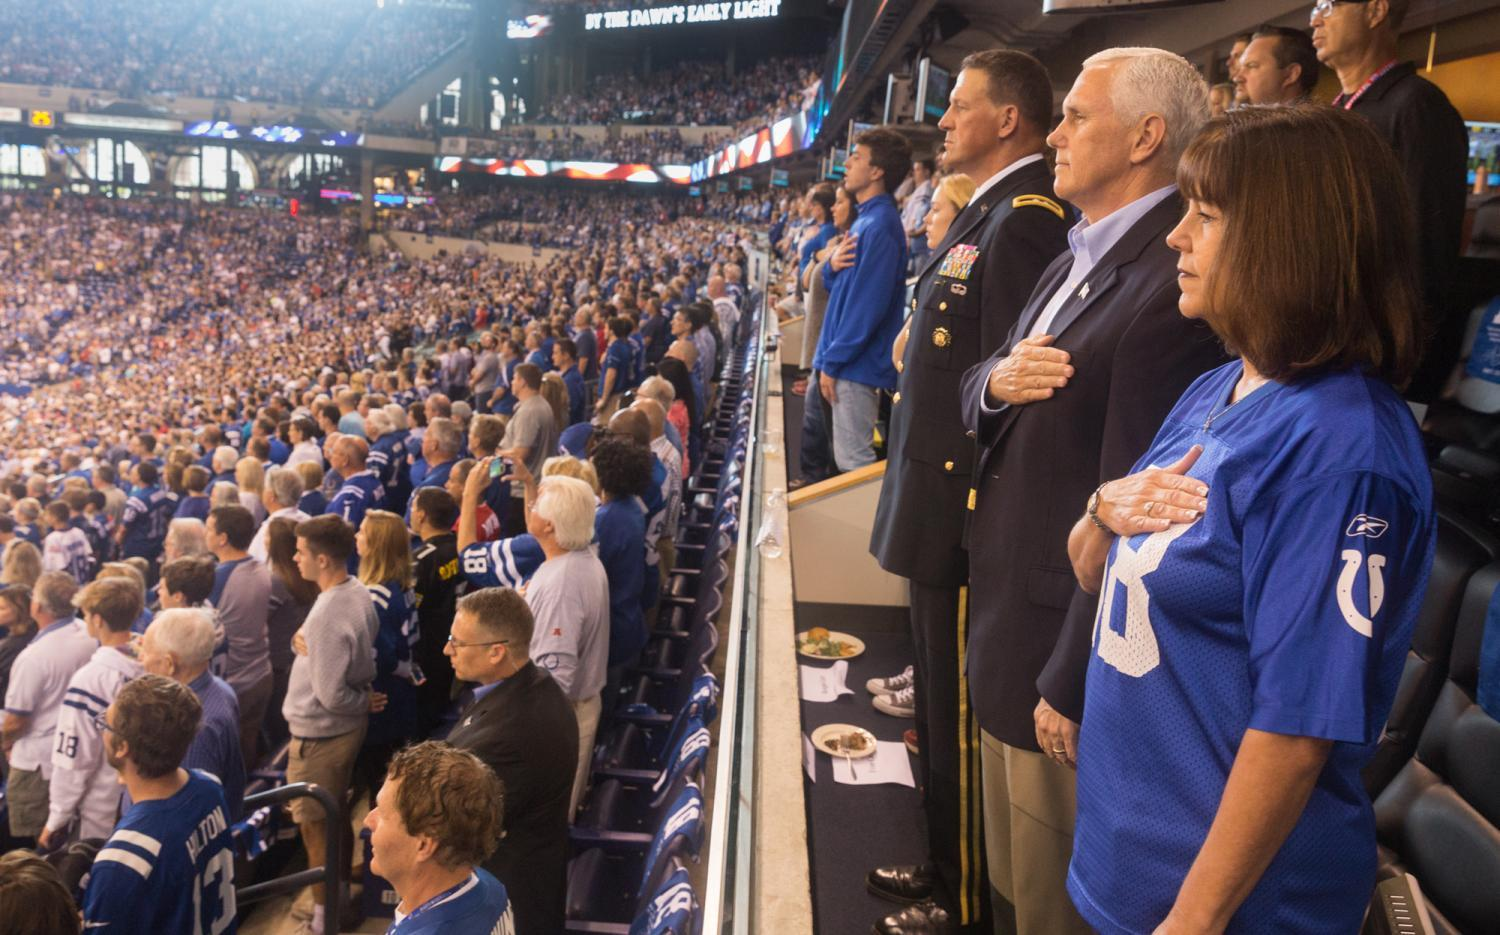 Vice President Mike Pence abruptly left the Colts and 49ers game on Oct. 8 in Indianapolis after several players knelt during the national anthem.